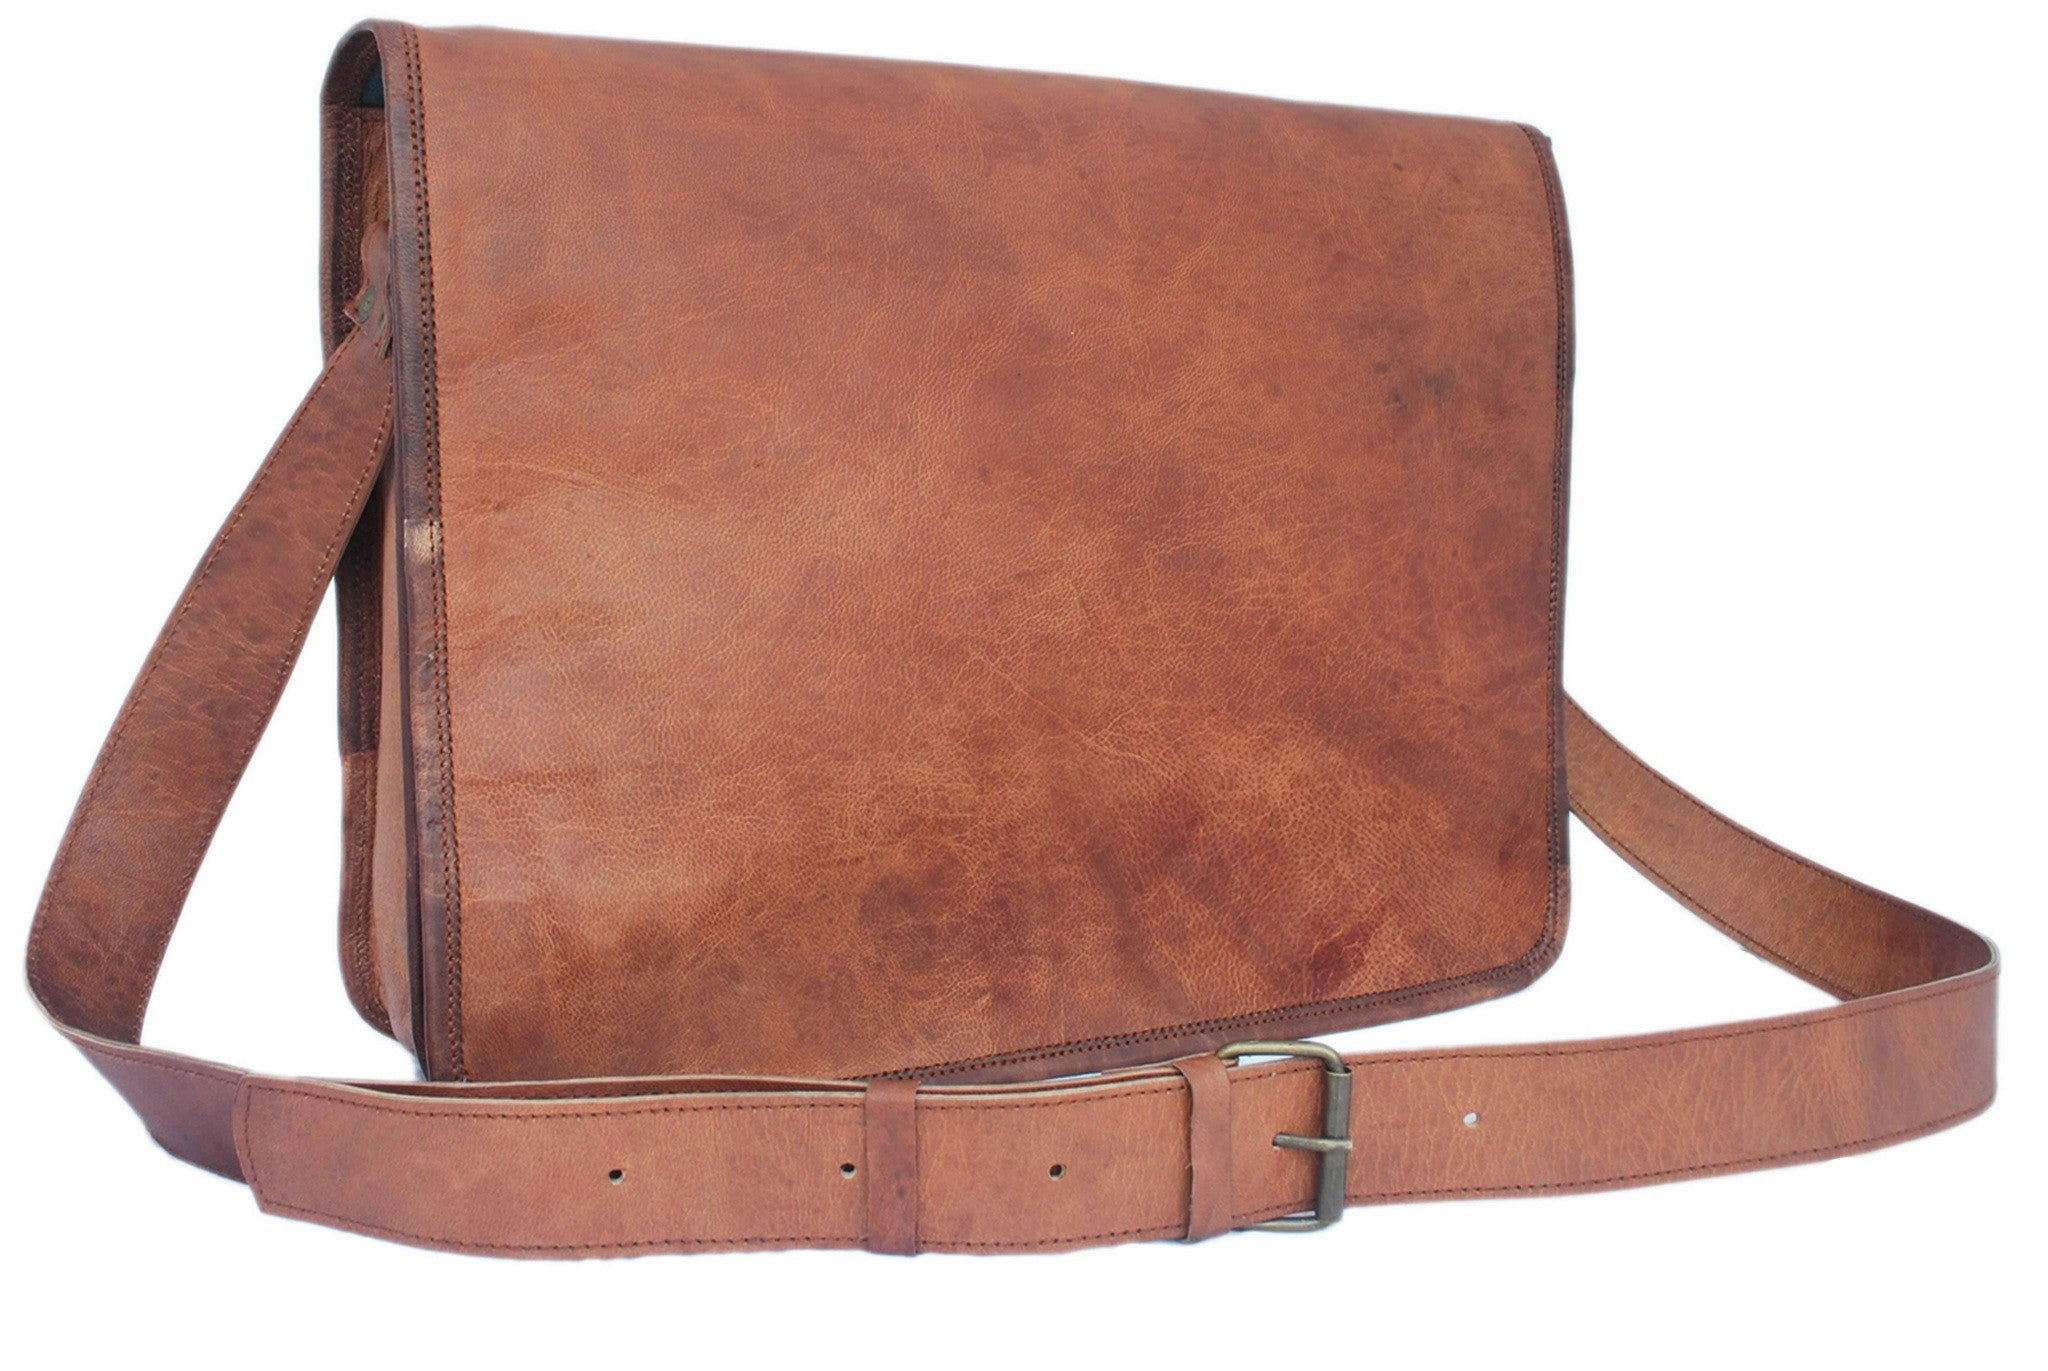 fb1c3334ba34 Leather bags for mens  Leather vintage messenger bag  Messenger bags for men   Leather Laptop Messenger ...